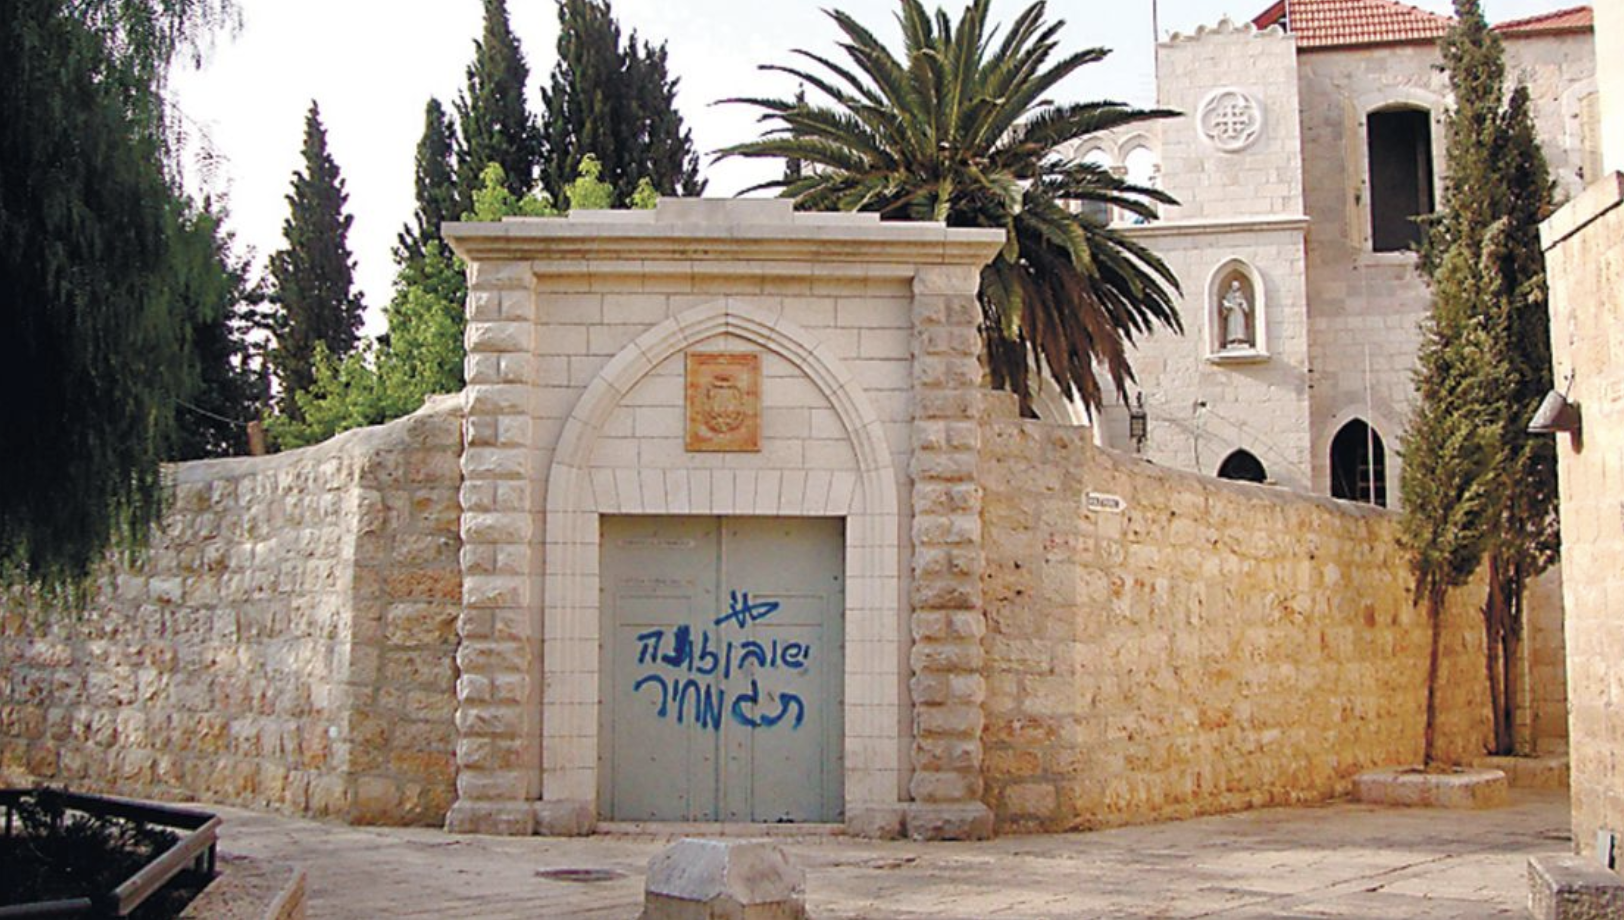 Graffiti reading 'Jesus, son of a bitch, price tag,' was found on a door near the Franciscan monastery on Mount Zion, just outside the walls of Jerusalem's Old City. Credit: AP/HO